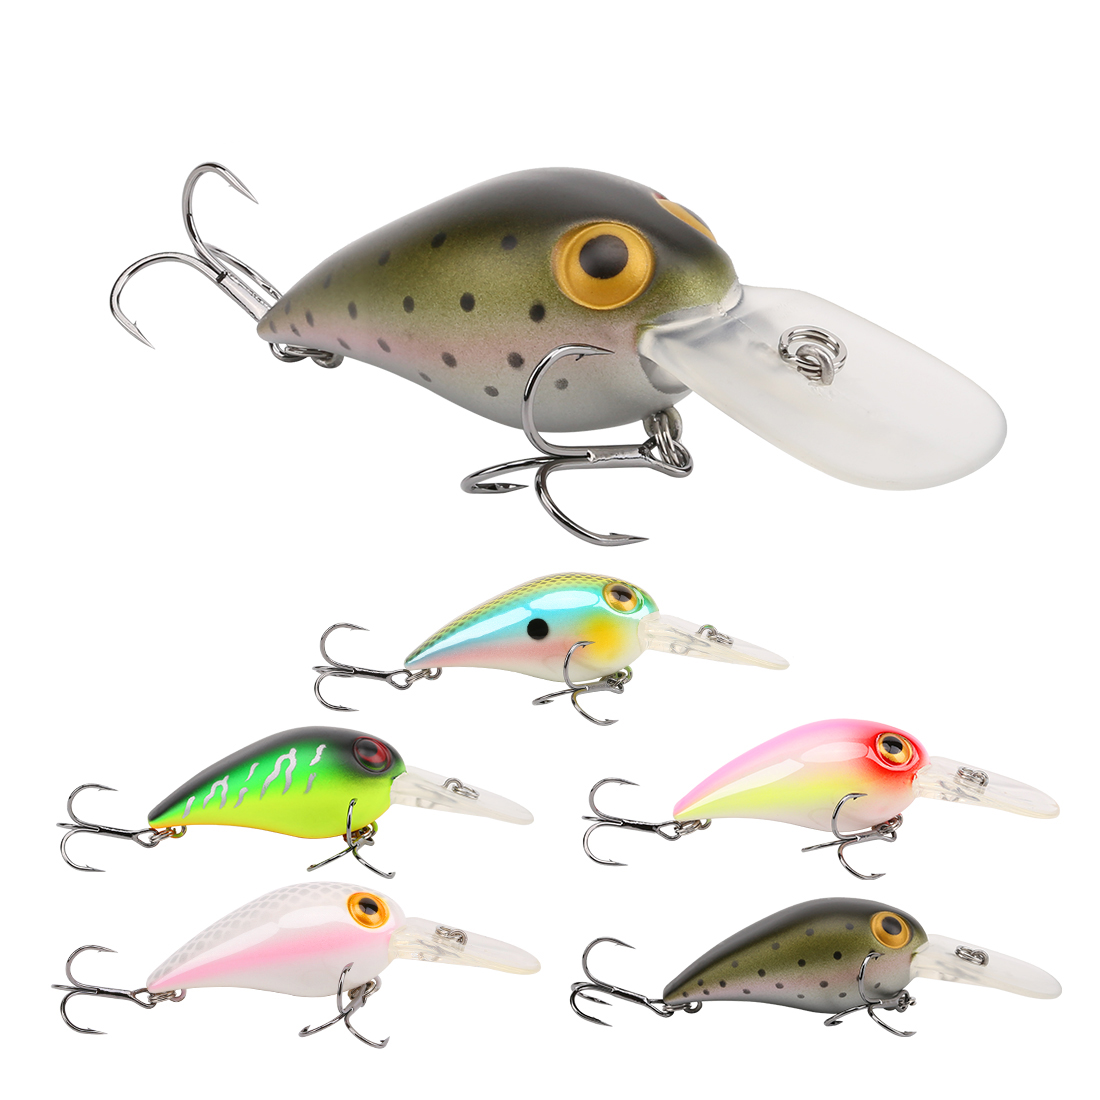 SeaKnight SK002 1PCS Crankbaits 11g 50mm Hard Fishing L